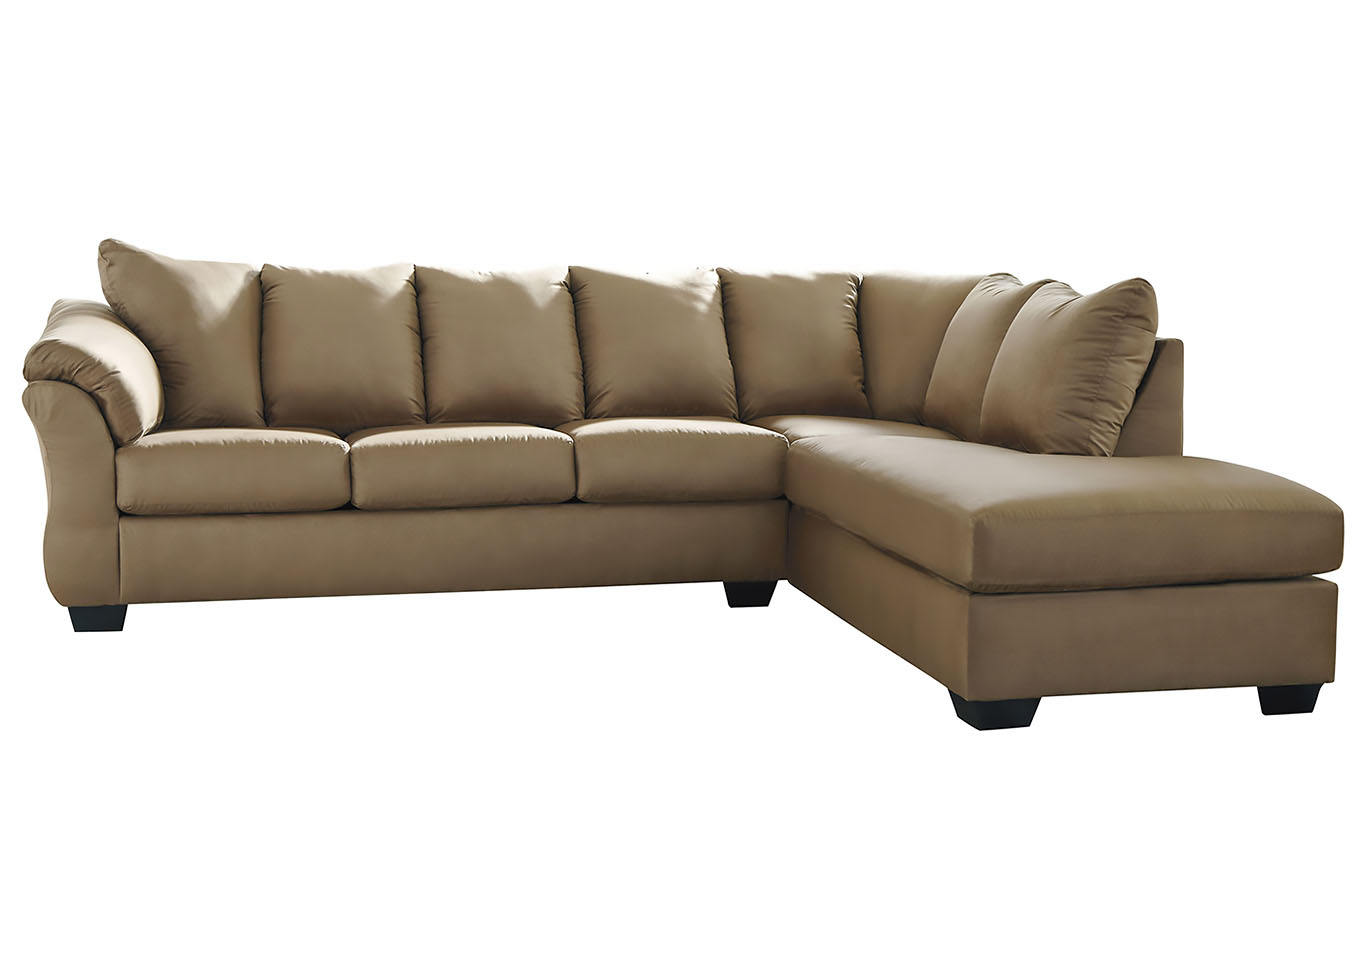 Darcy Mocha RAF Chaise Sectional,Signature Design By Ashley